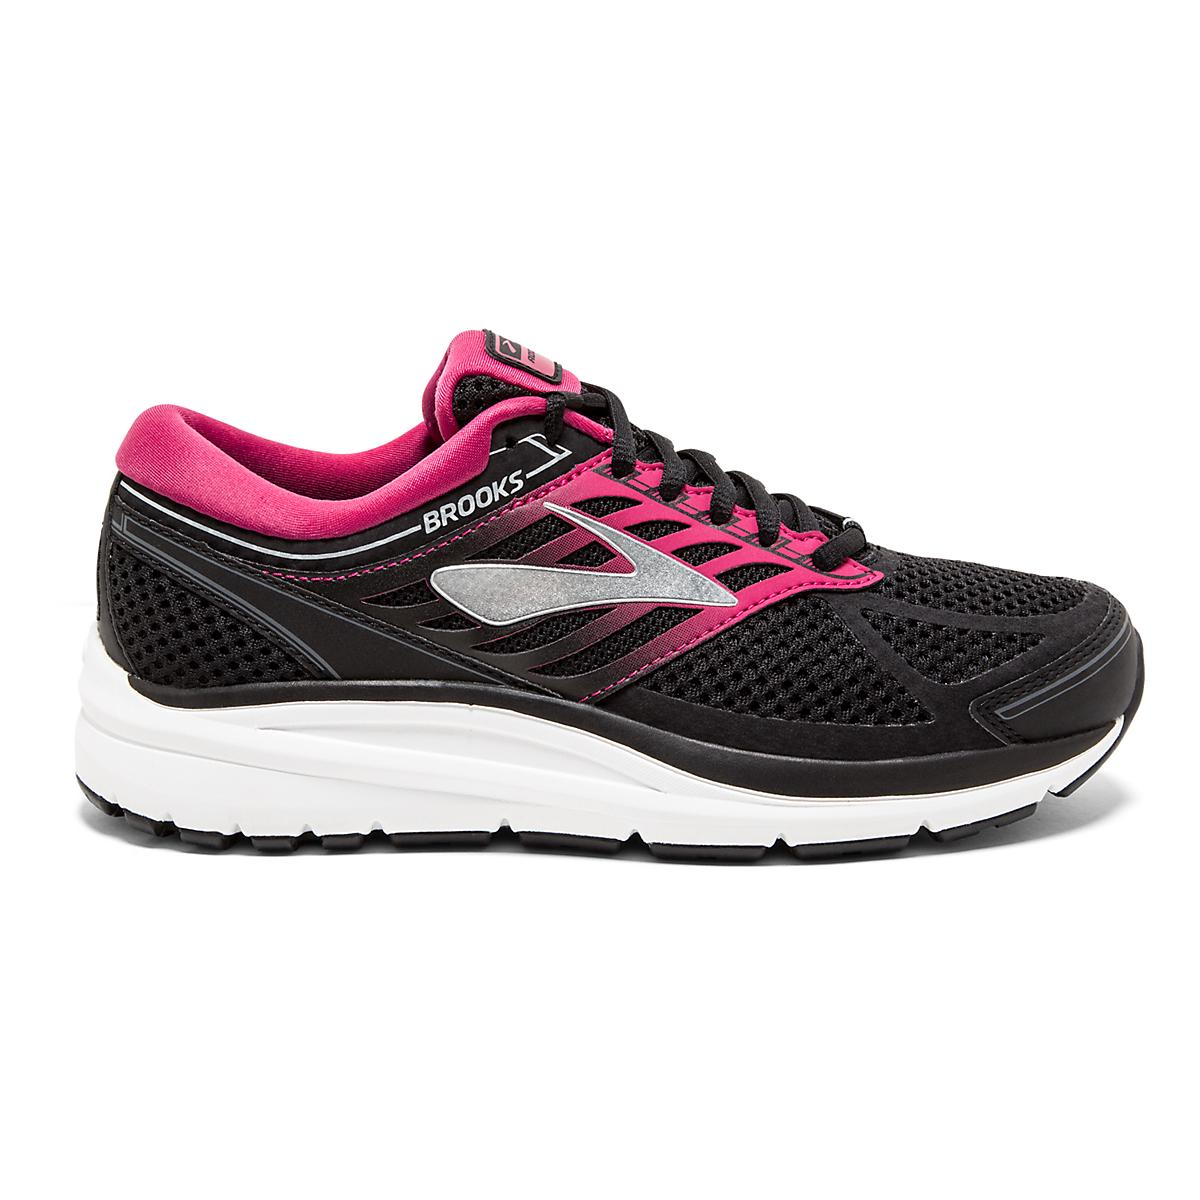 Womens Brooks Addiction 13 Running Shoe at Road Runner Sports 7ff443be8